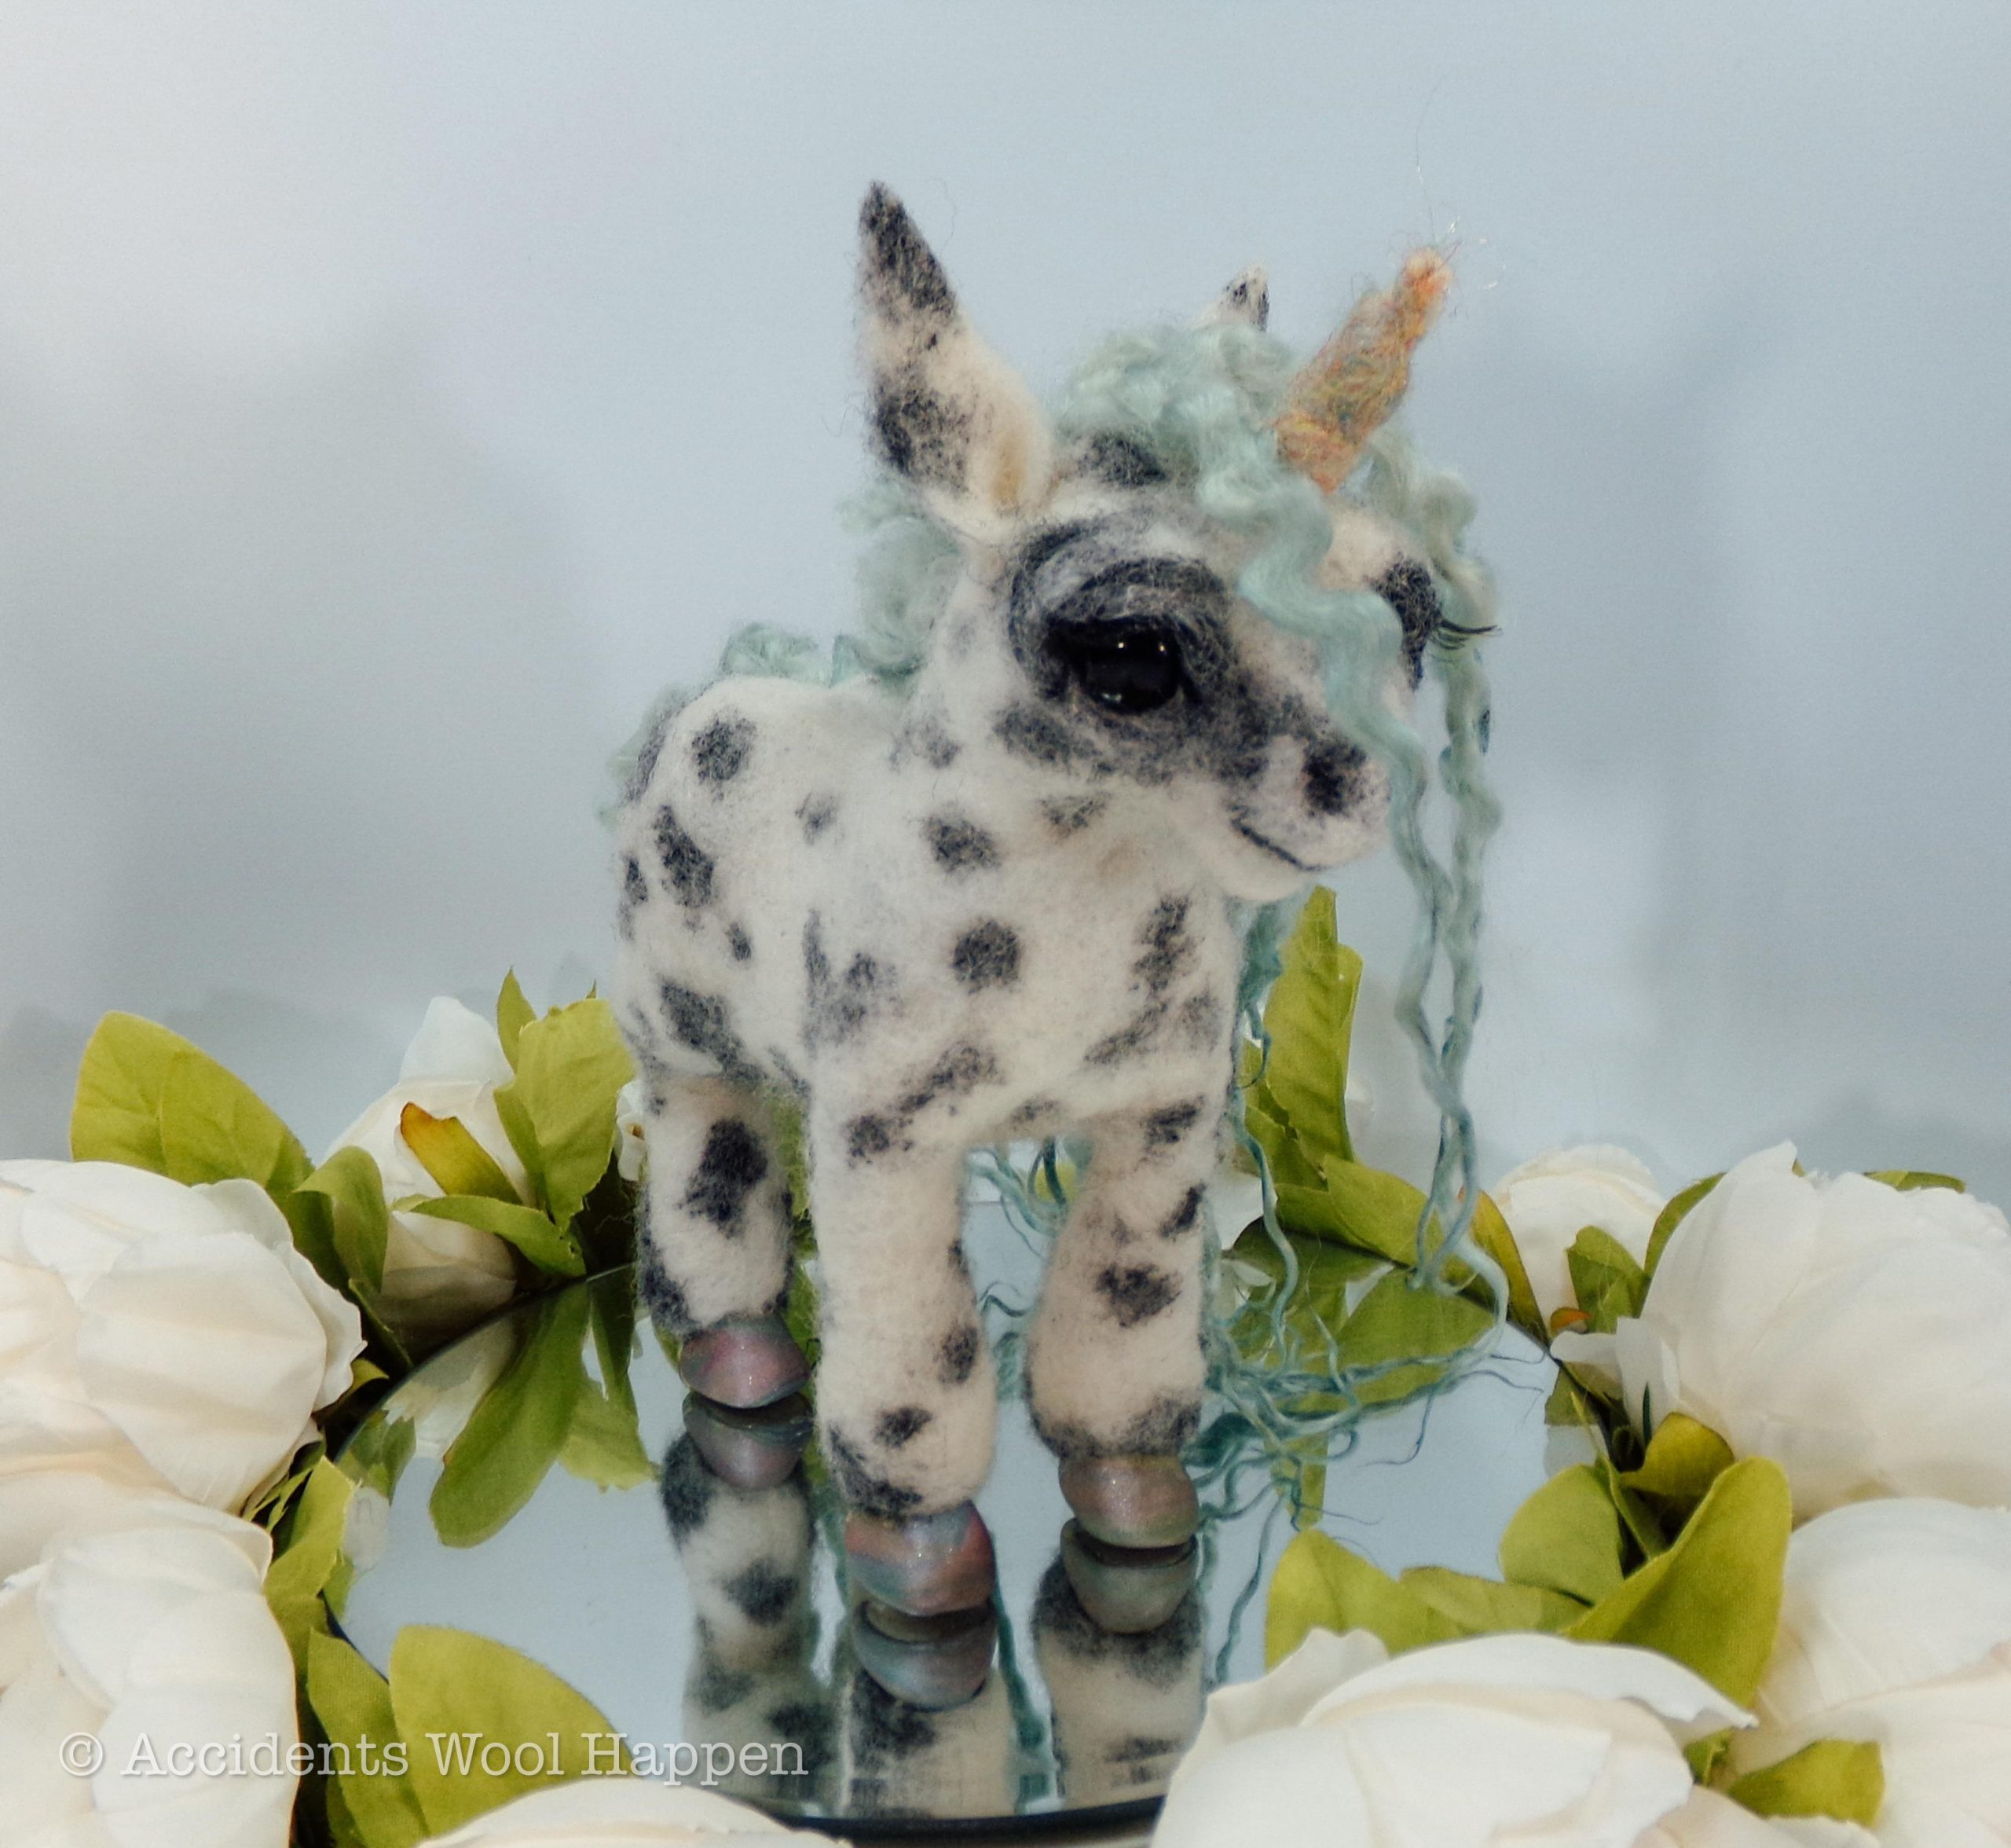 bb9us6g4gem51 scaled - Meet Mika, the baby black and white spotted needle felted unicorn! - hobbies, crafts